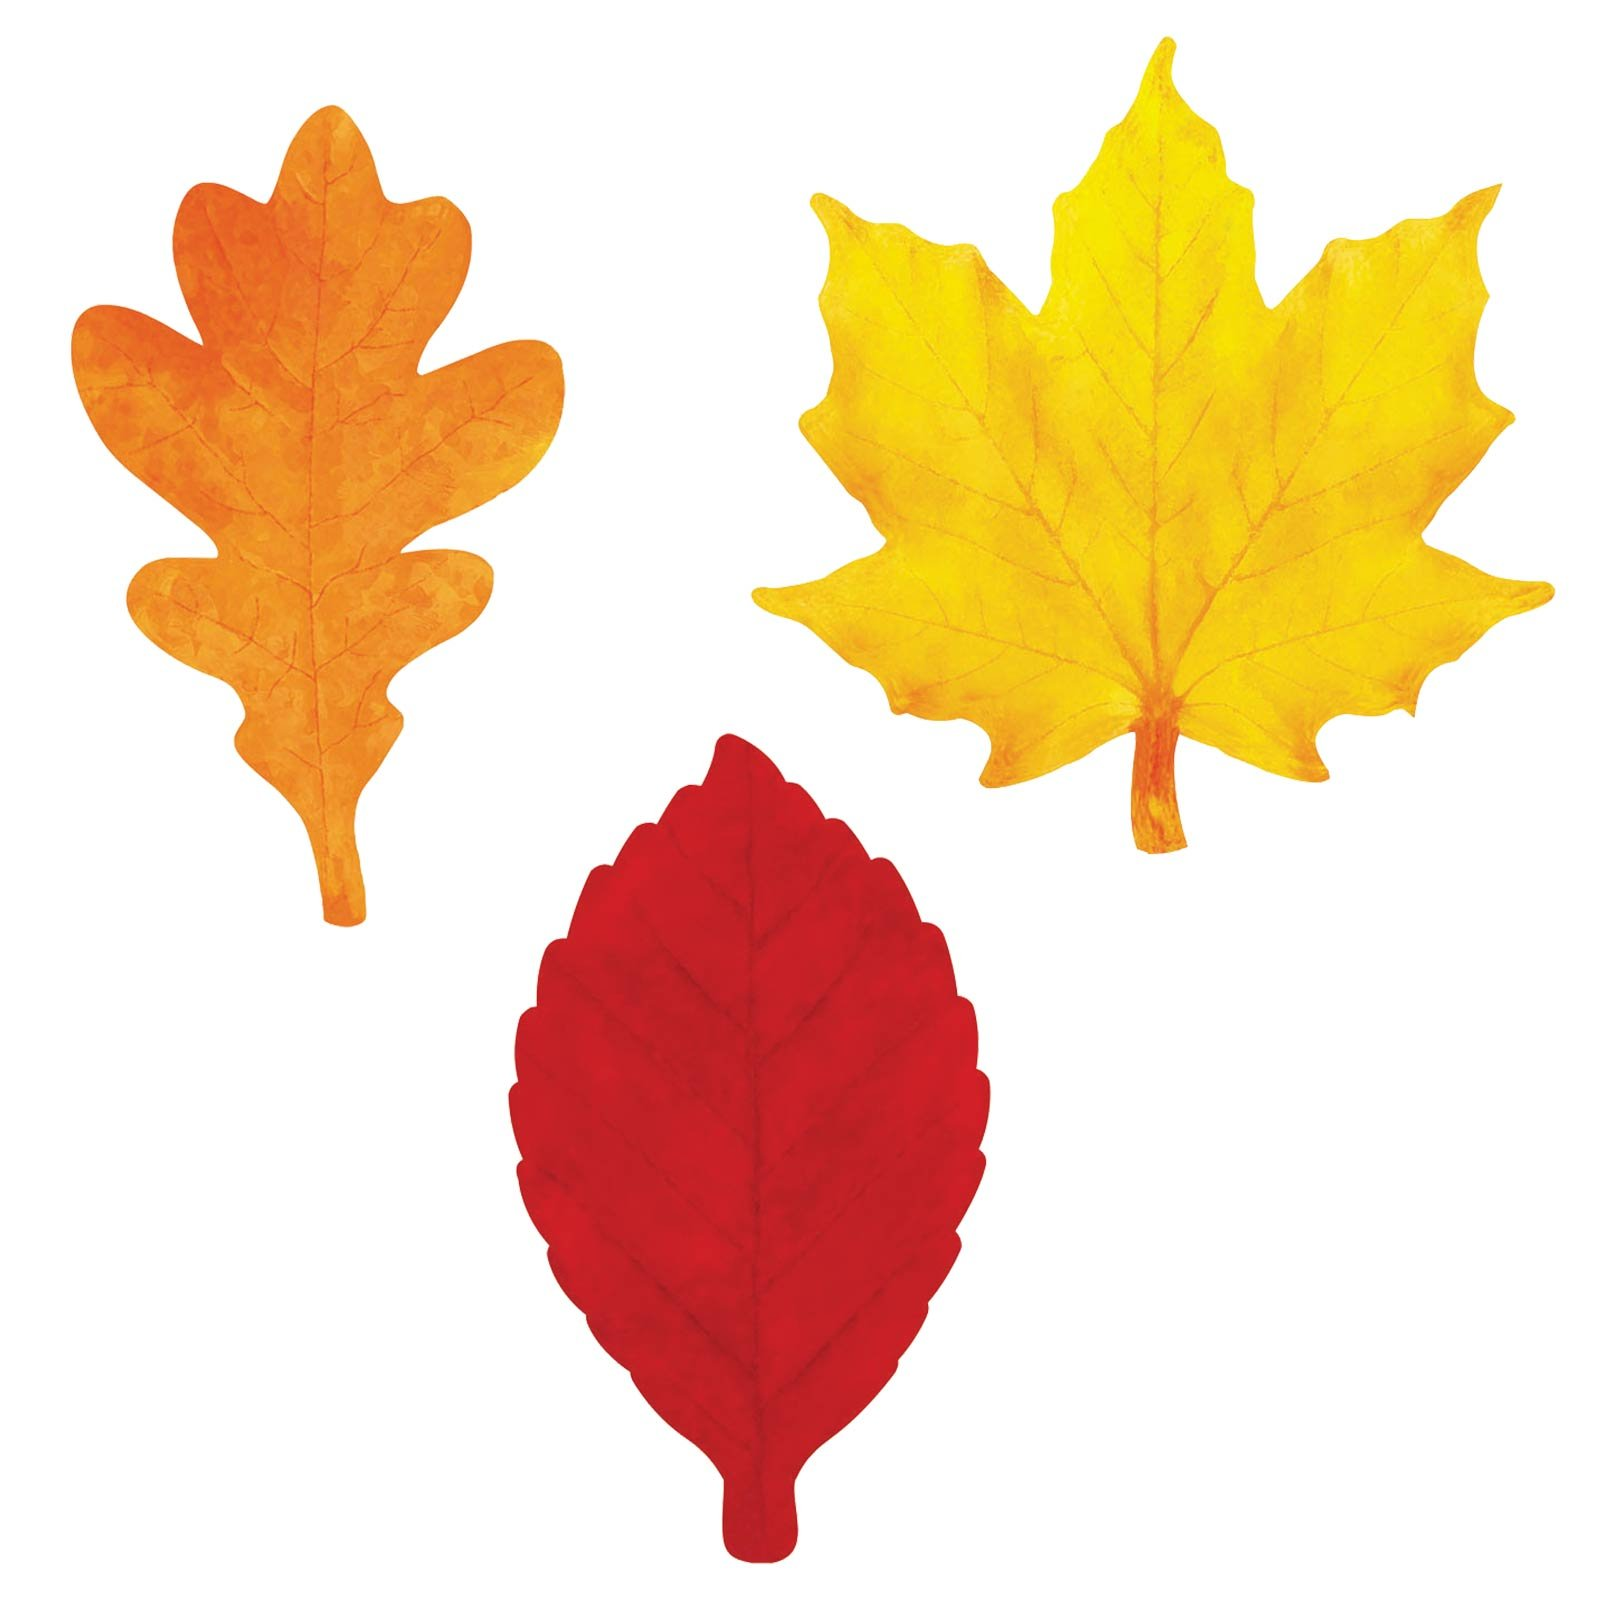 Apple Leaf Template - ClipArt Best - Cliparts.co